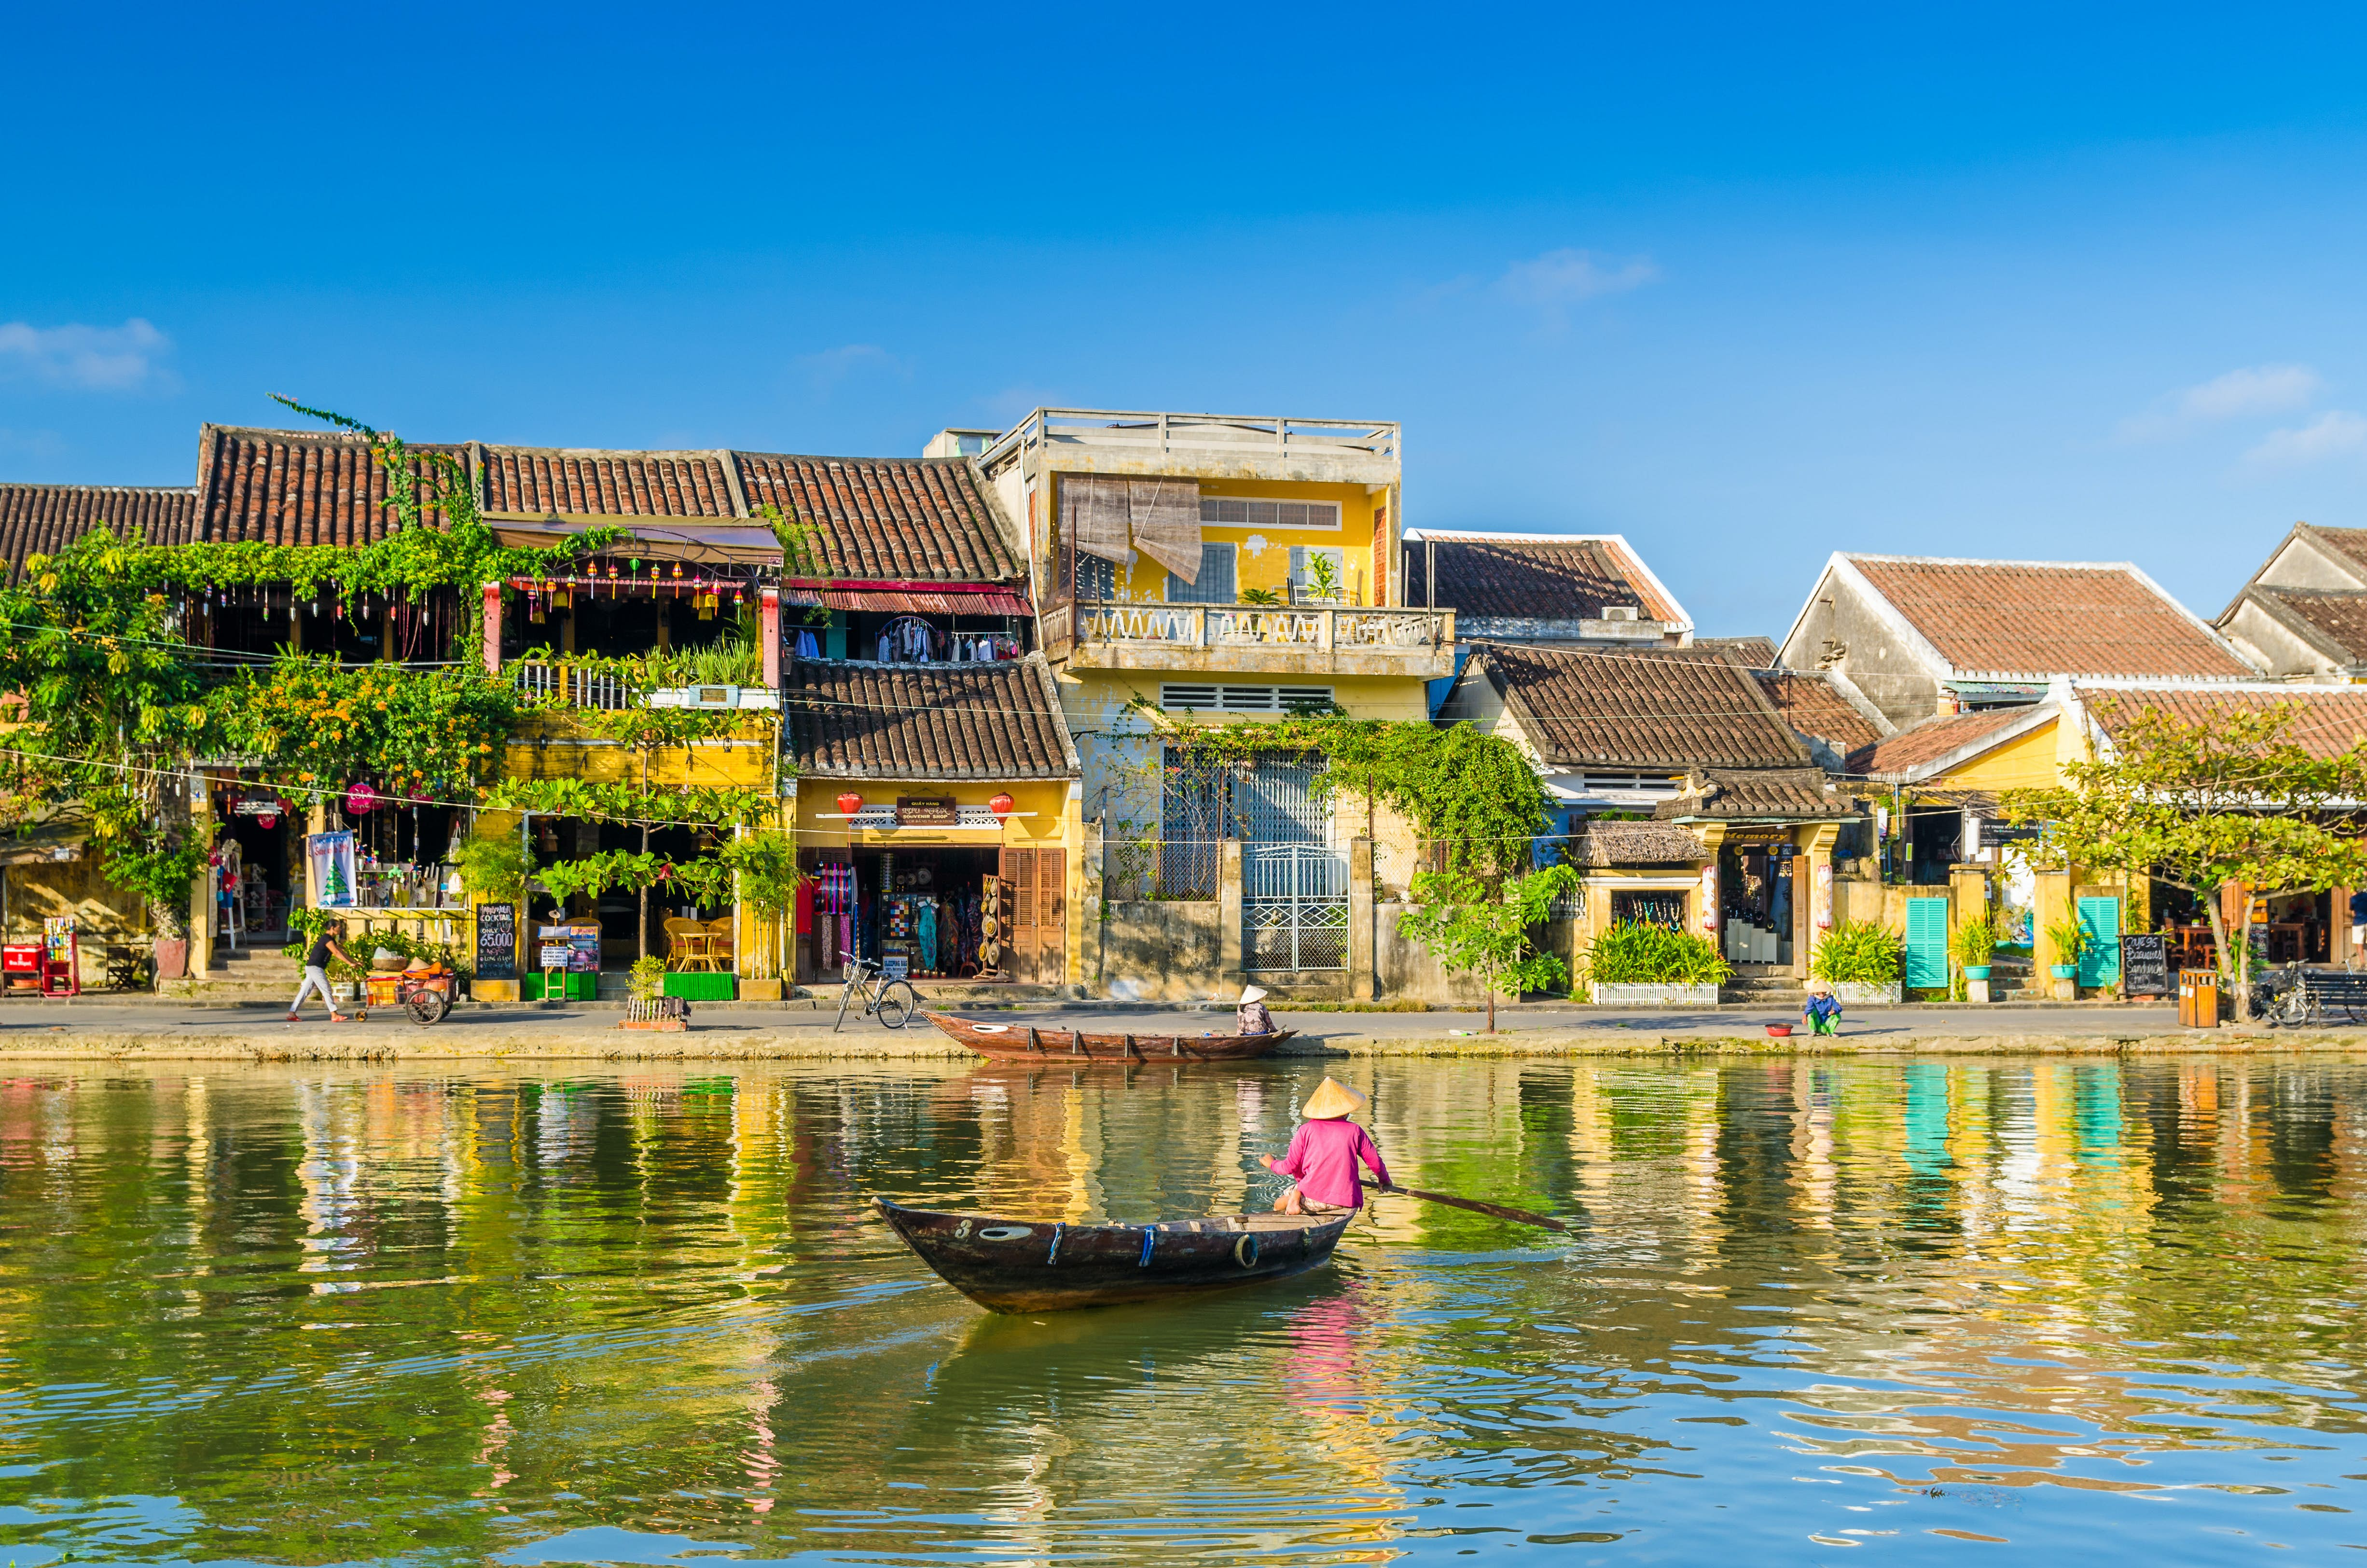 20 best places to visit in Vietnam   Lonely Planet